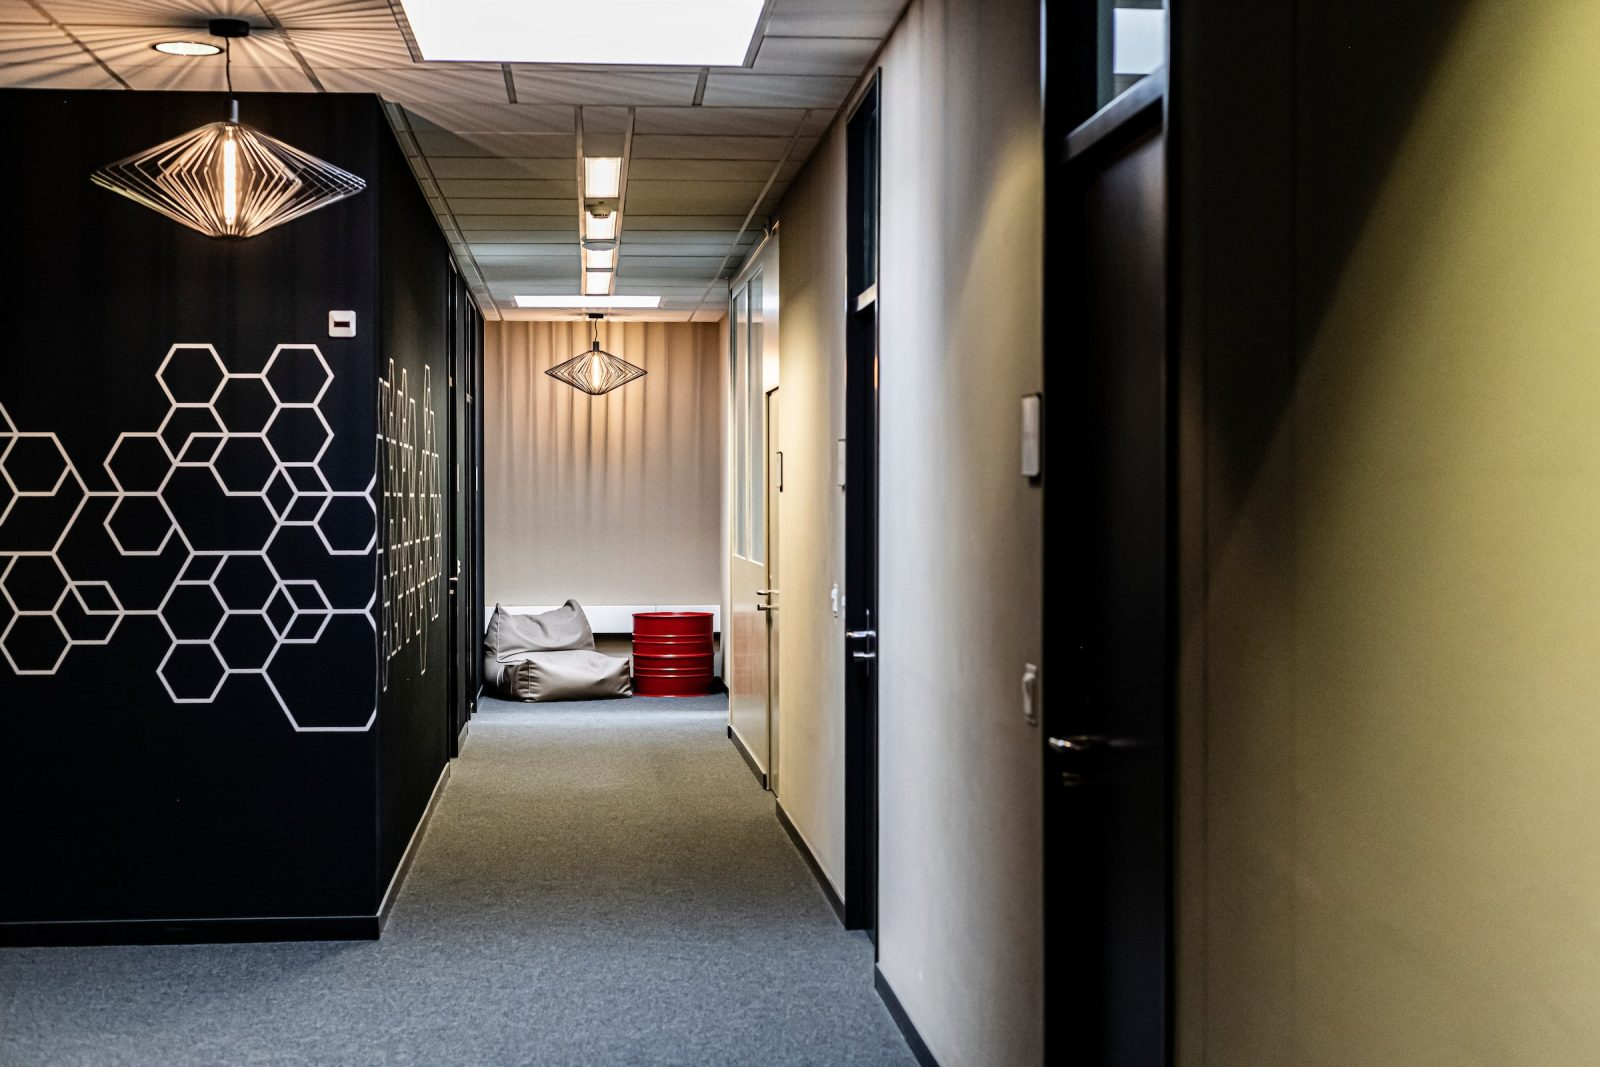 068_20210824_IFJ_startup_space_Location-min